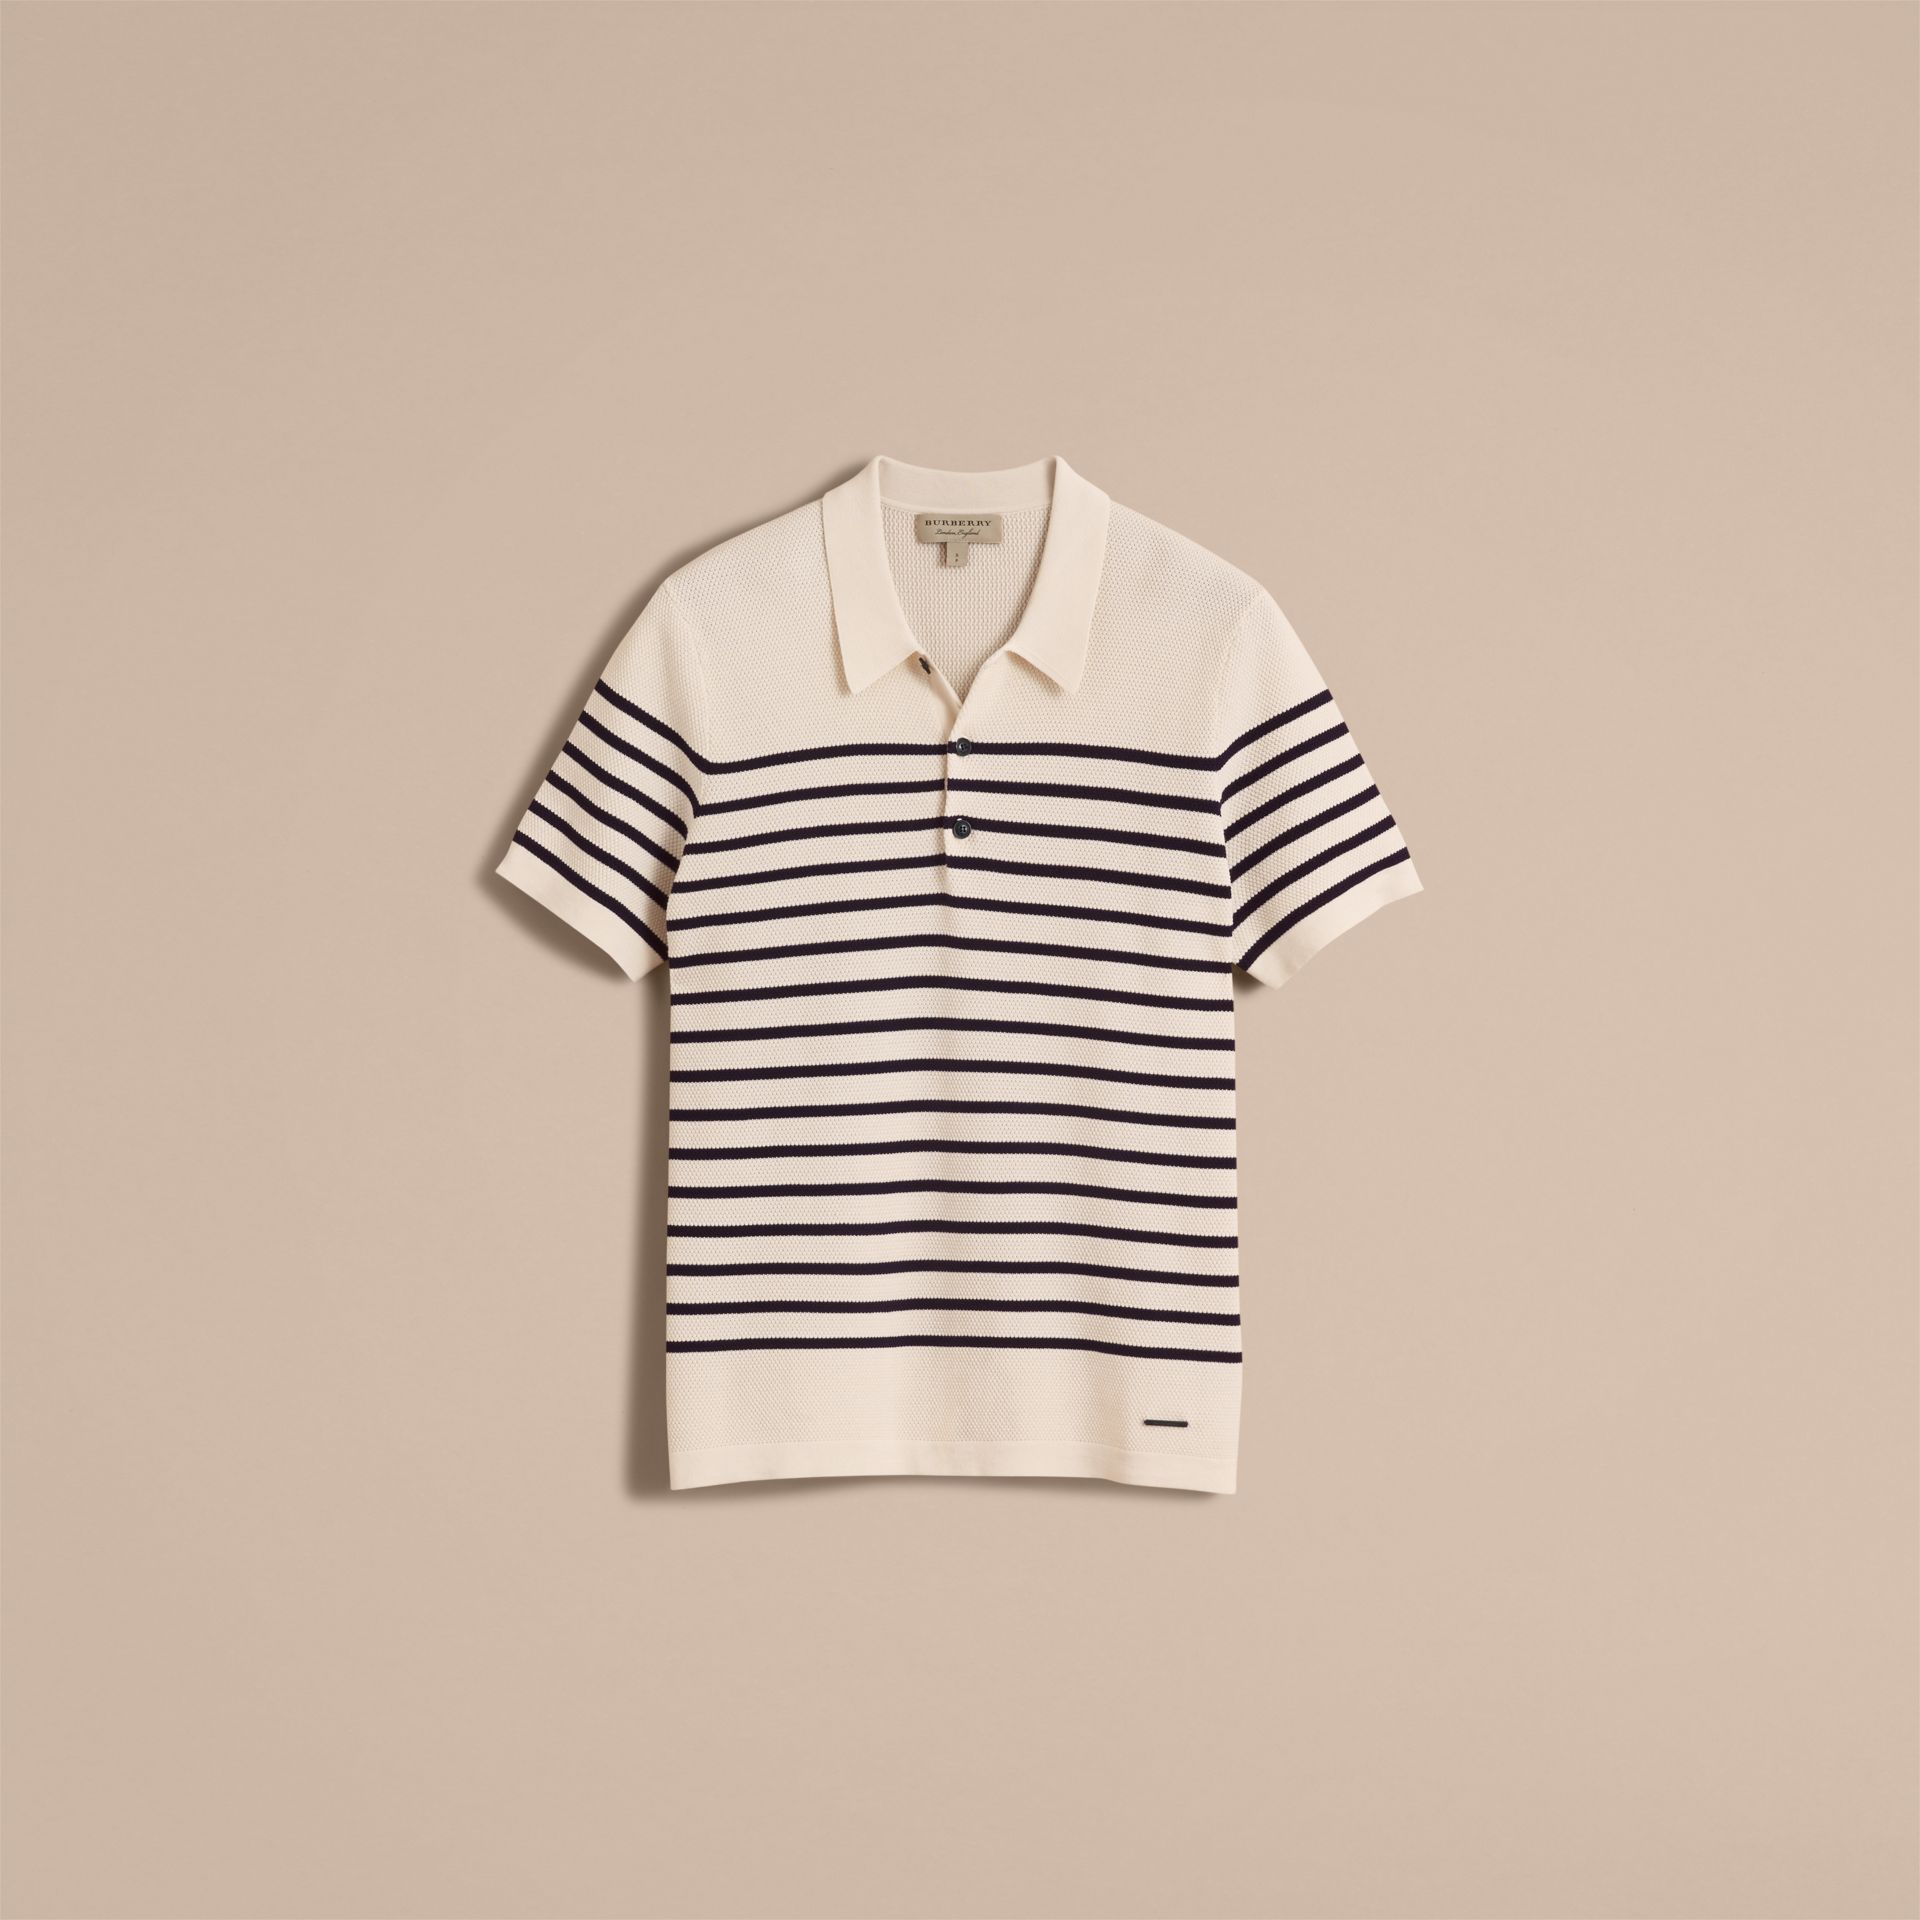 Striped Knitted Cotton Polo Shirt in White - Men | Burberry - gallery image 4